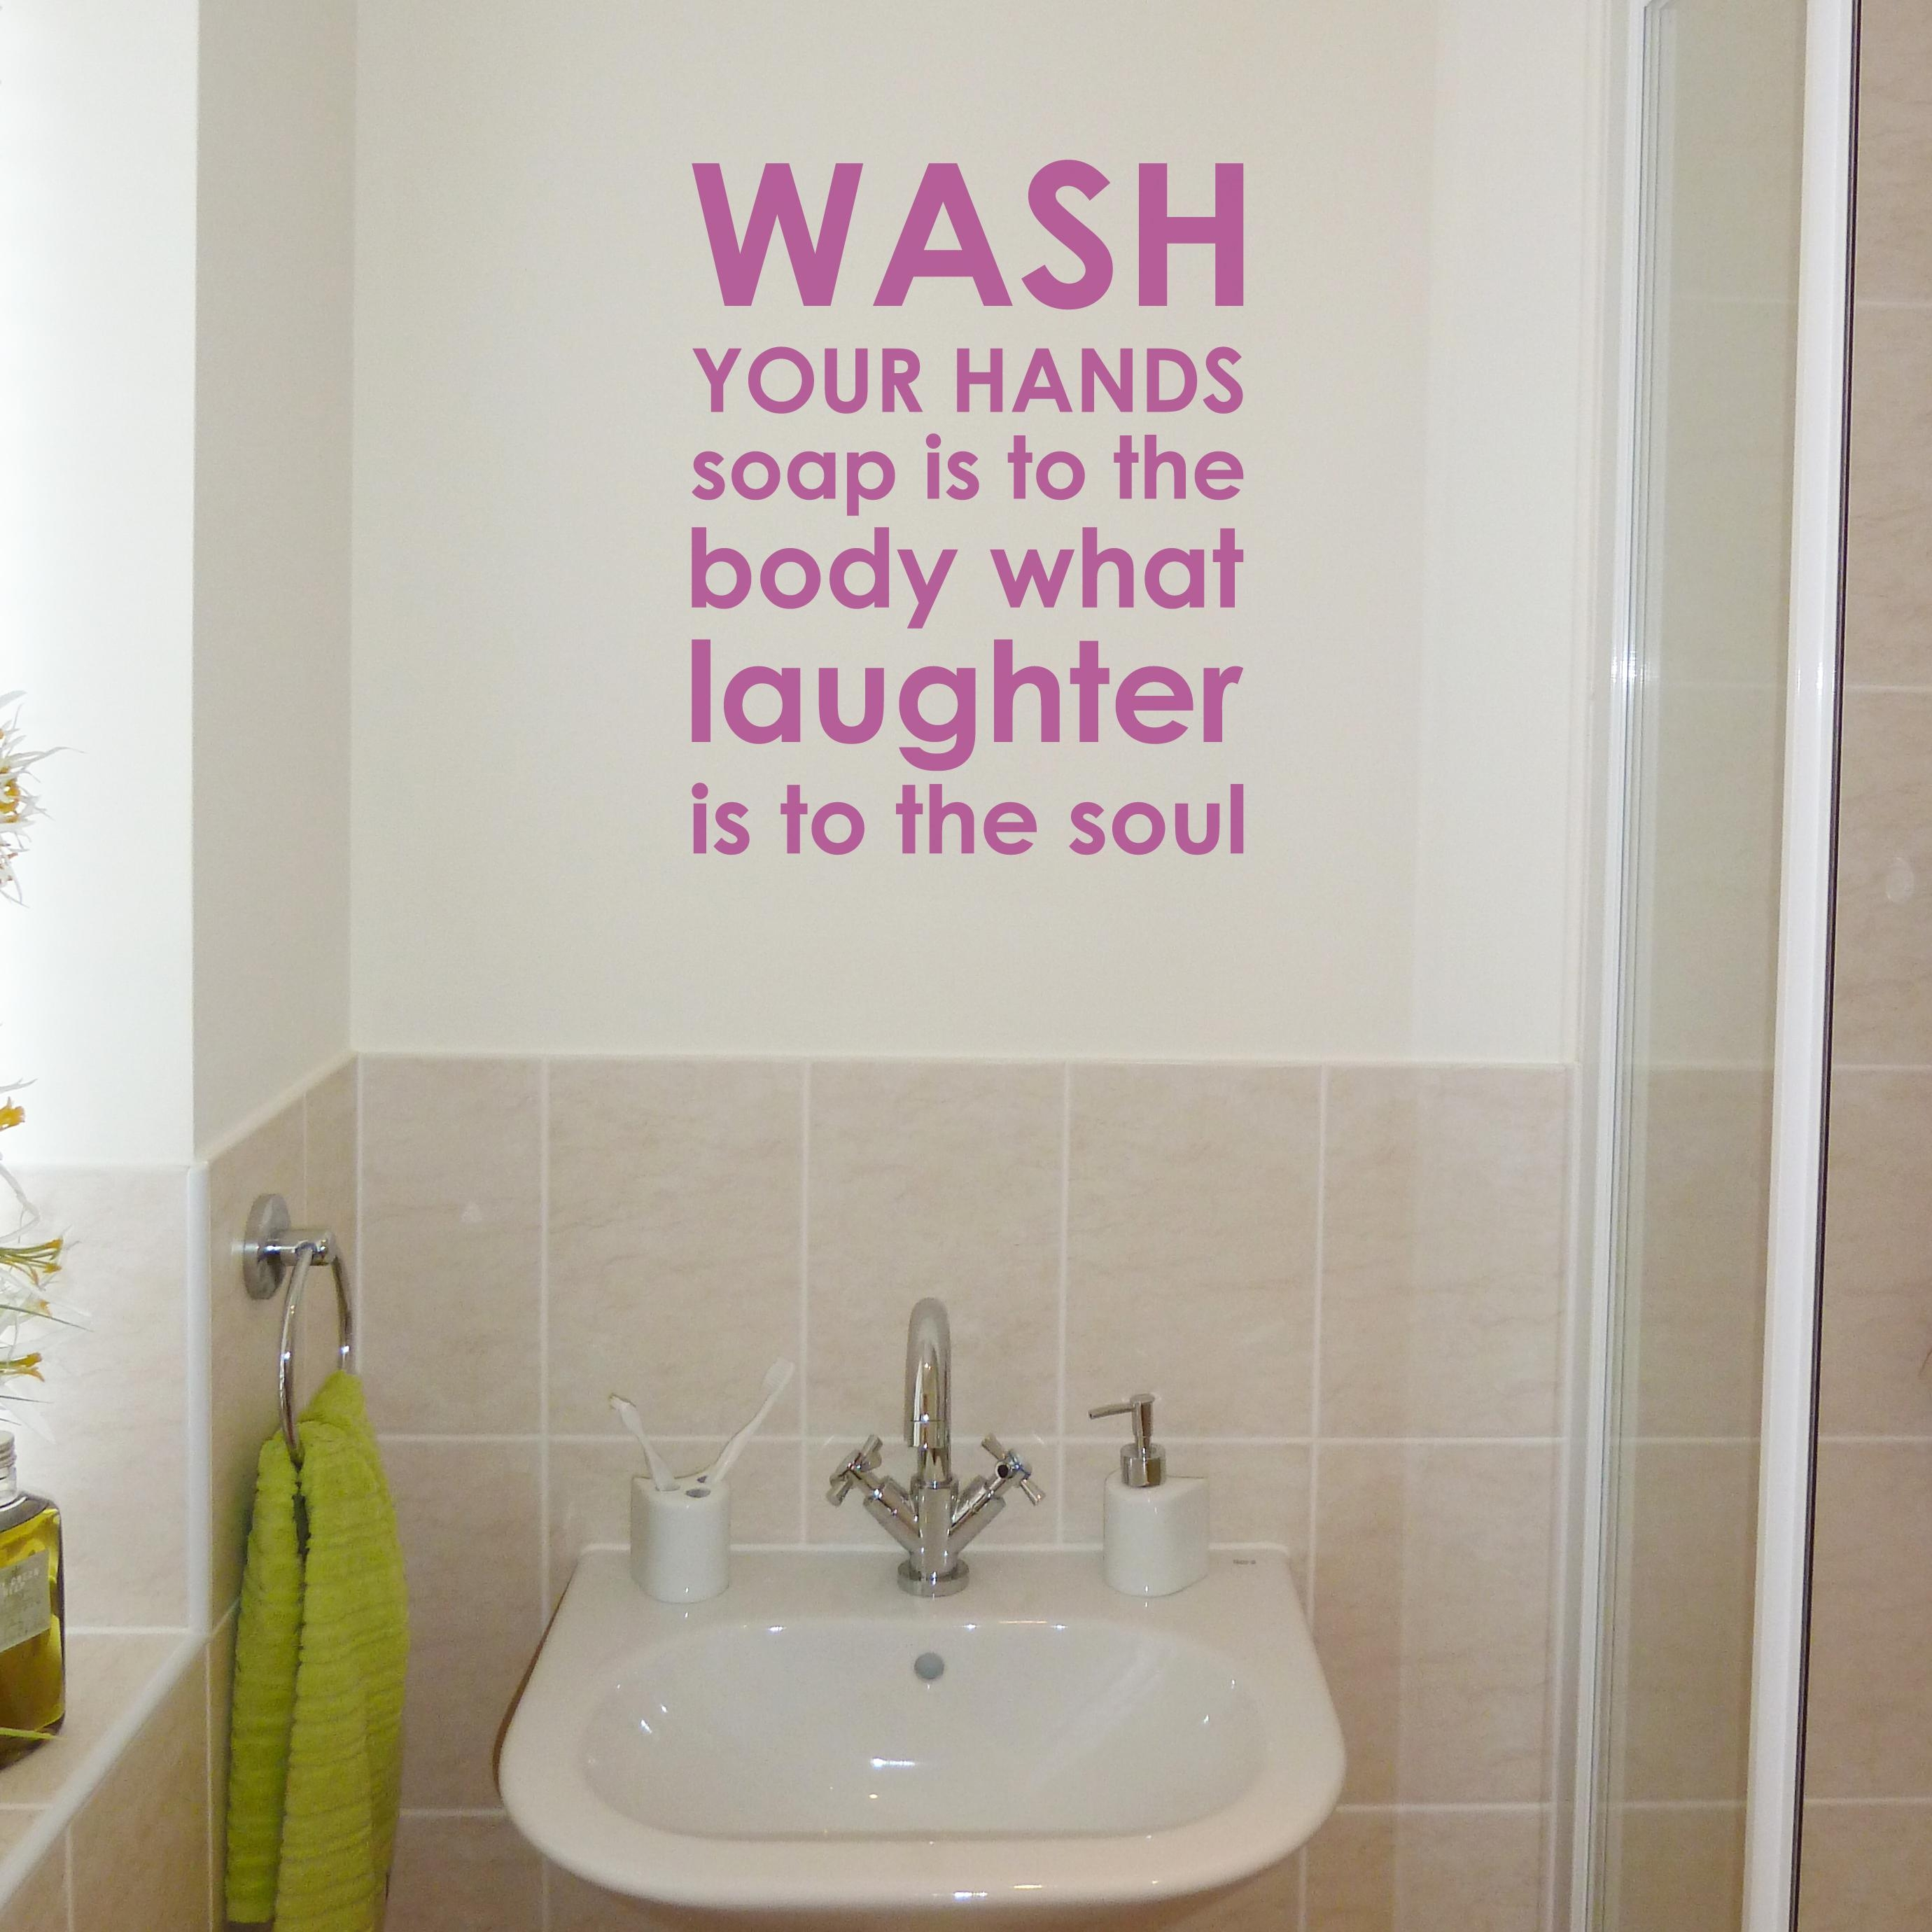 Best Diy Bathroom Wall Art On With Hd Resolution 2178X1452 Pixels Within Purple Bathroom Wall Art (View 11 of 20)